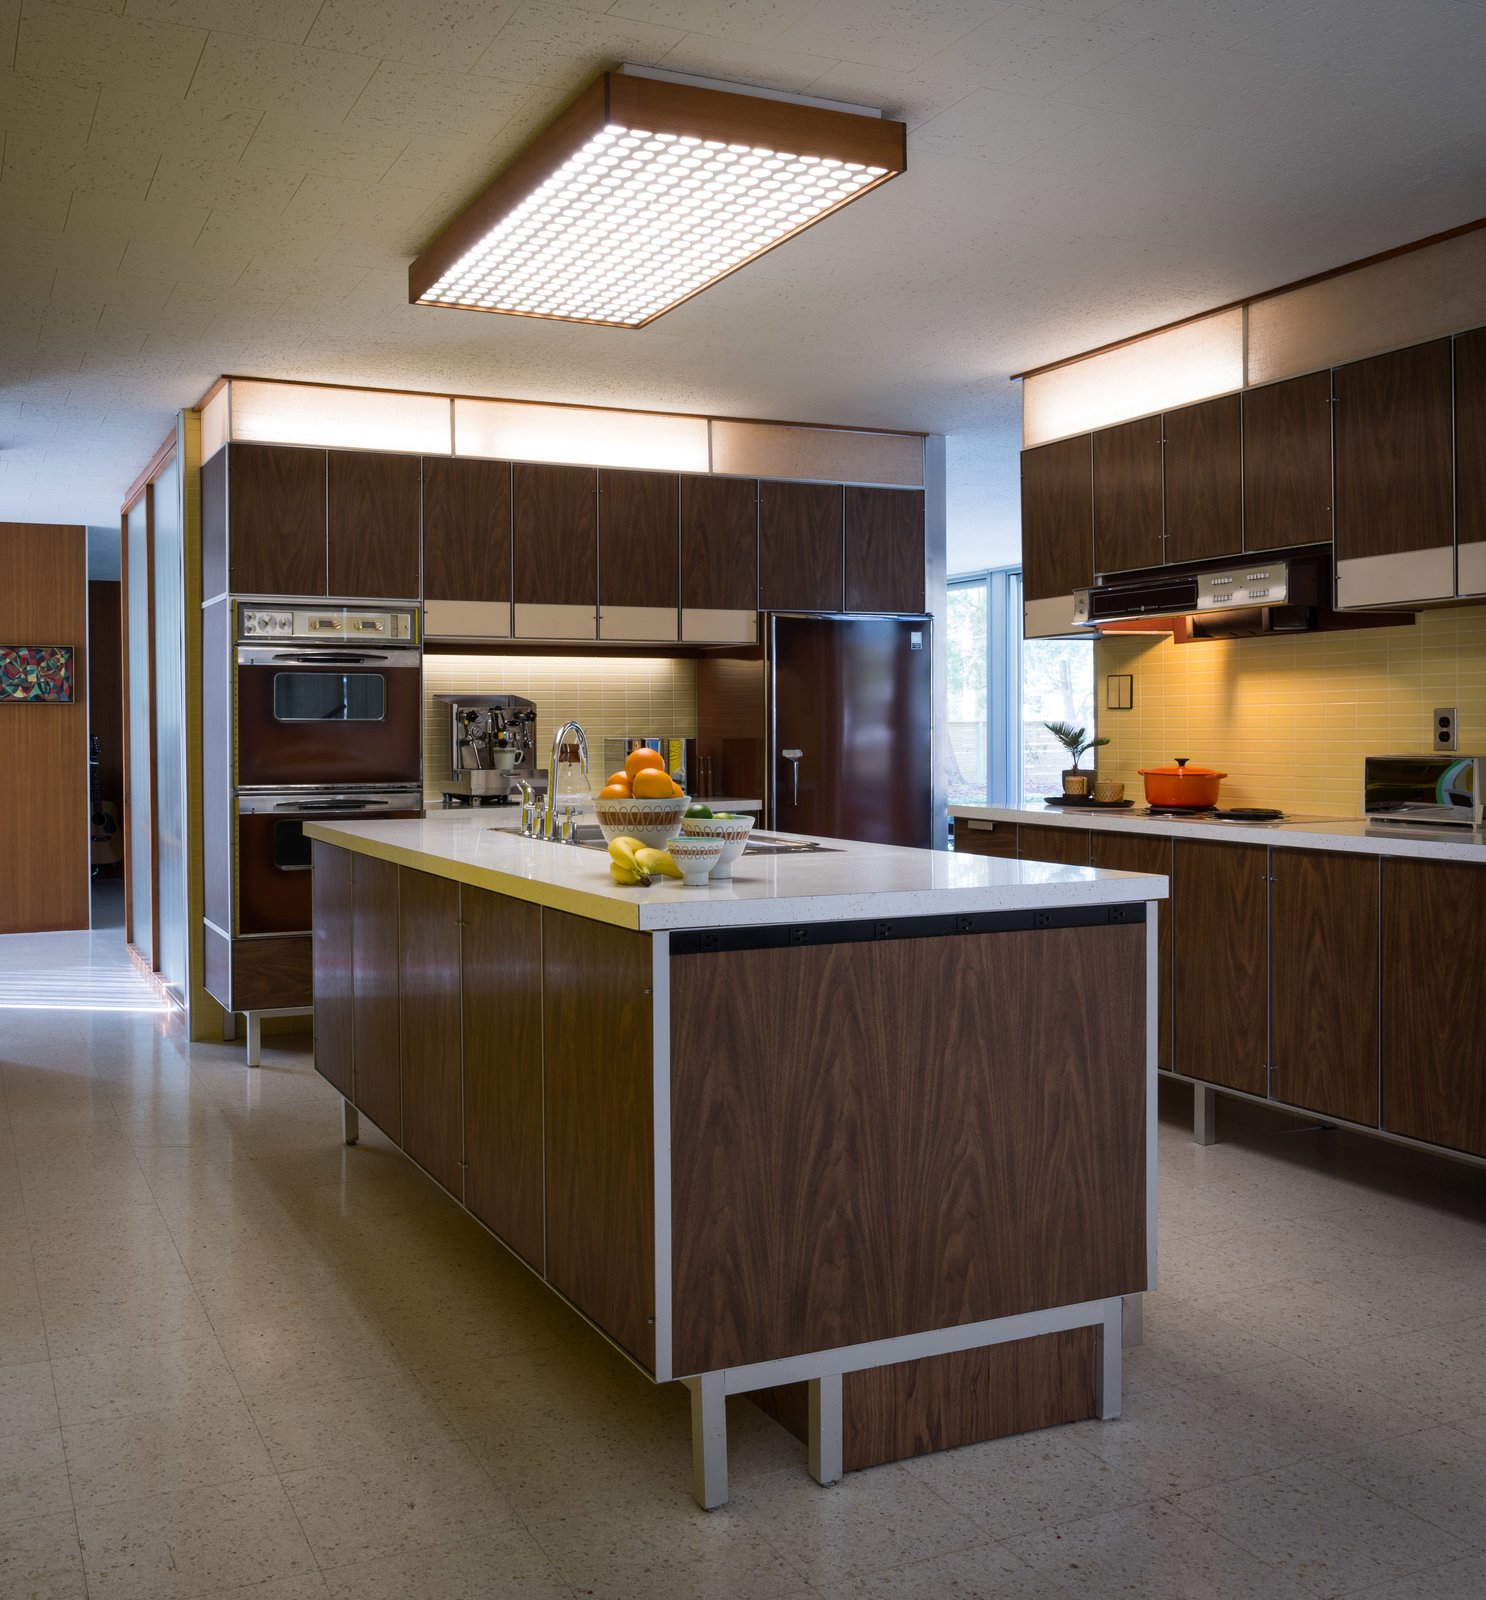 Paul McCobb designed the kitchen, built-in units, and vanities as well. Tagged: Kitchen, Wall Oven, Refrigerator, and Terrazzo Floor.  Photo 6 of 14 in A Rare Midcentury Prefab Looks Just Like it Did in 1958—Down to the Knoll and Paul McCobb Interiors